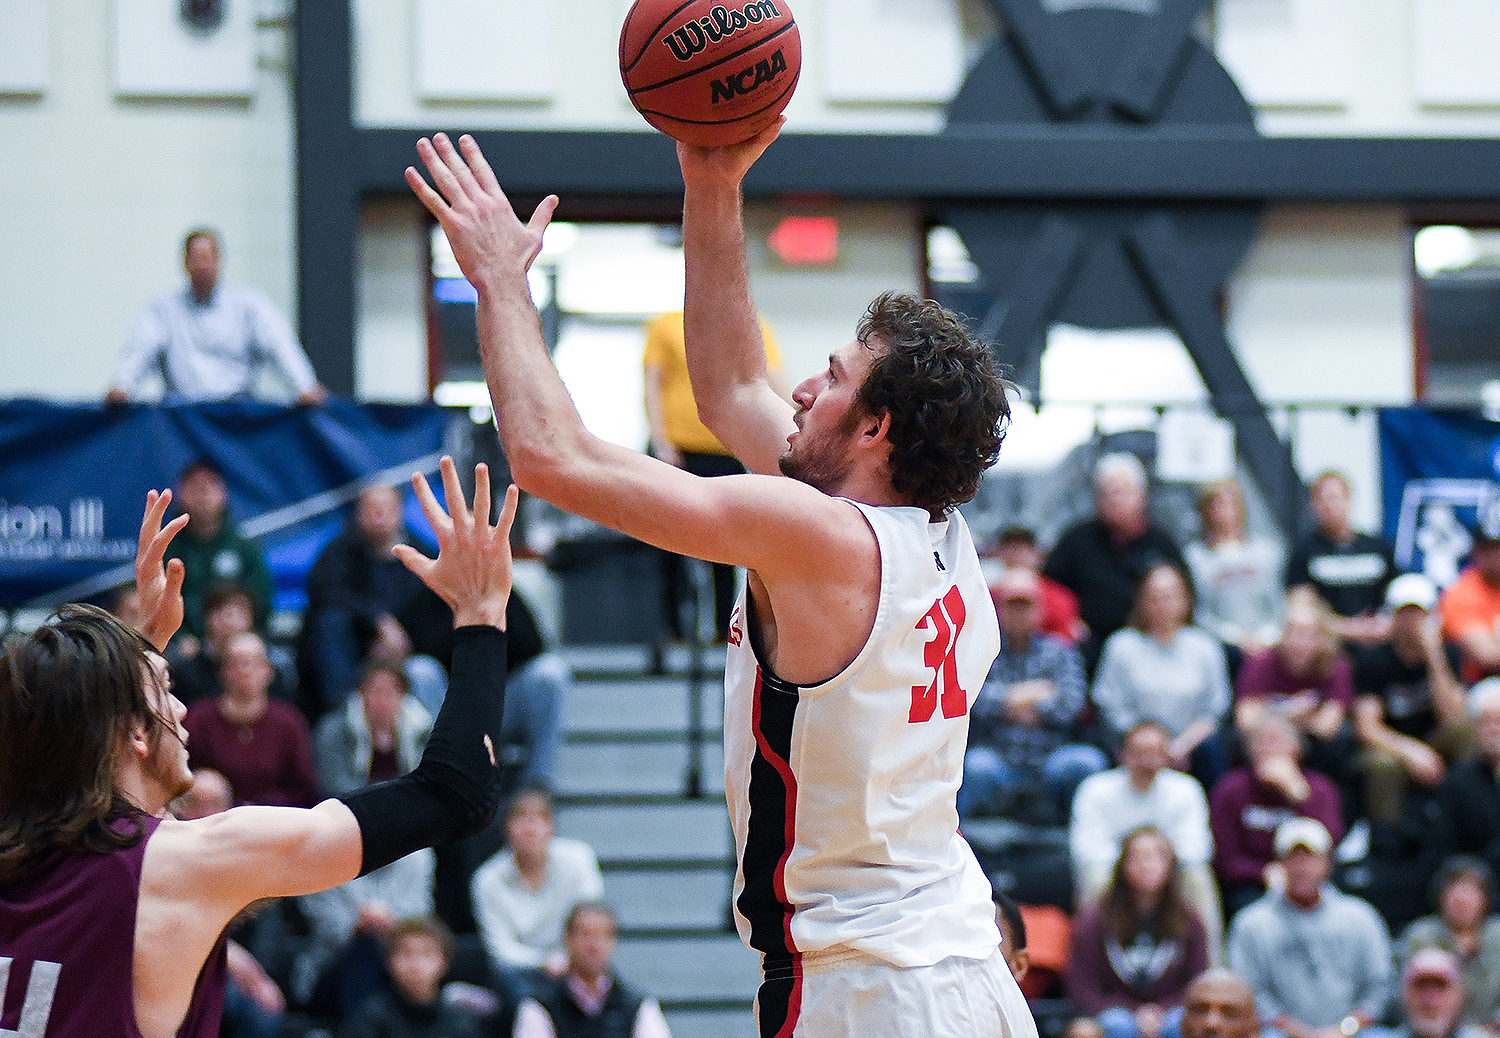 Nathan Krill '18 and the Wesleyan men's basketball team hosted first and second rounds of the NCAA Tournament on March 2-3 for the first time in program history. (Photo by Jonas Powell '18)